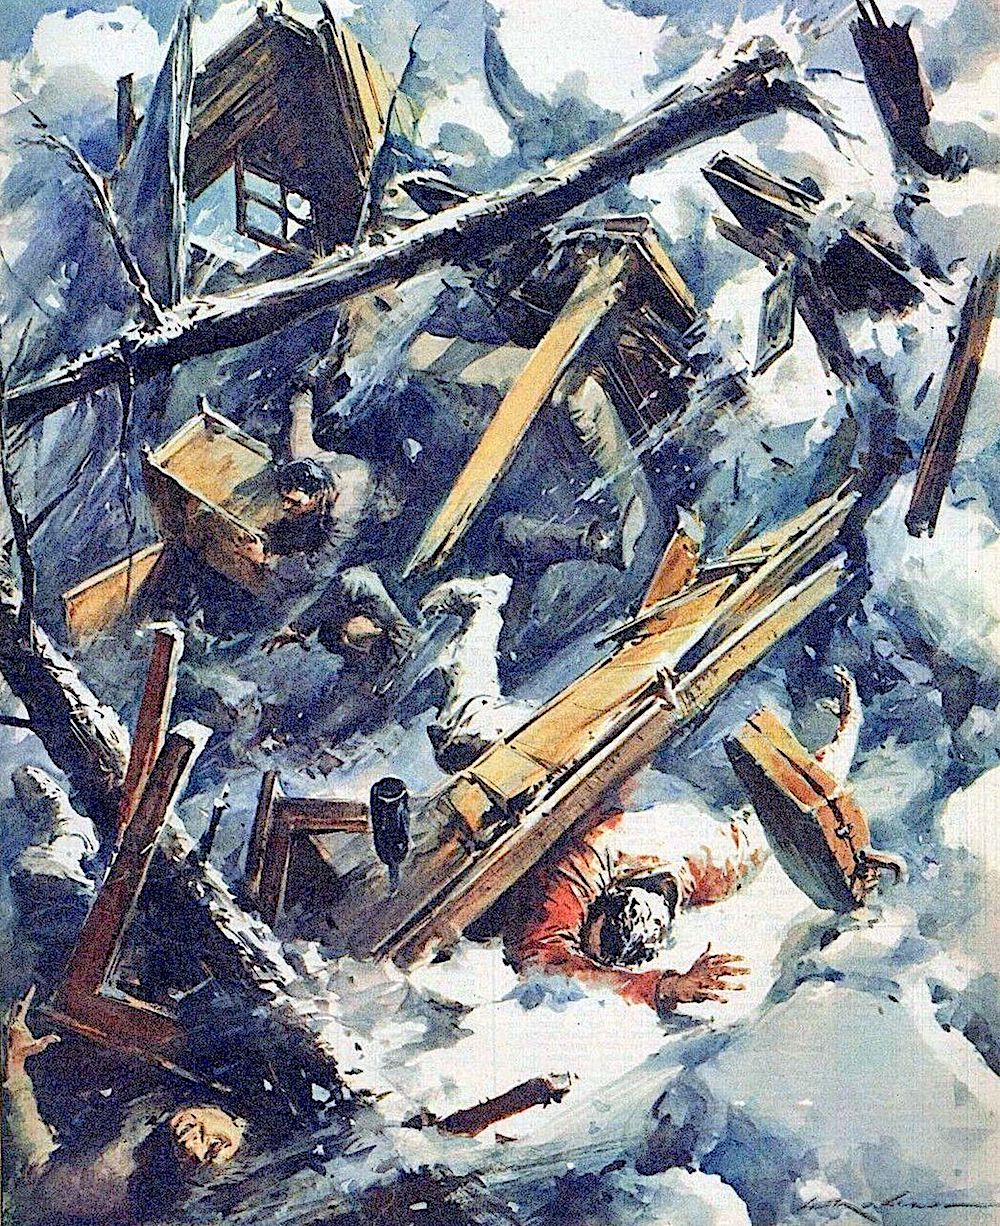 a Walter Molino illustration of an avalanch destroying a cabin with men